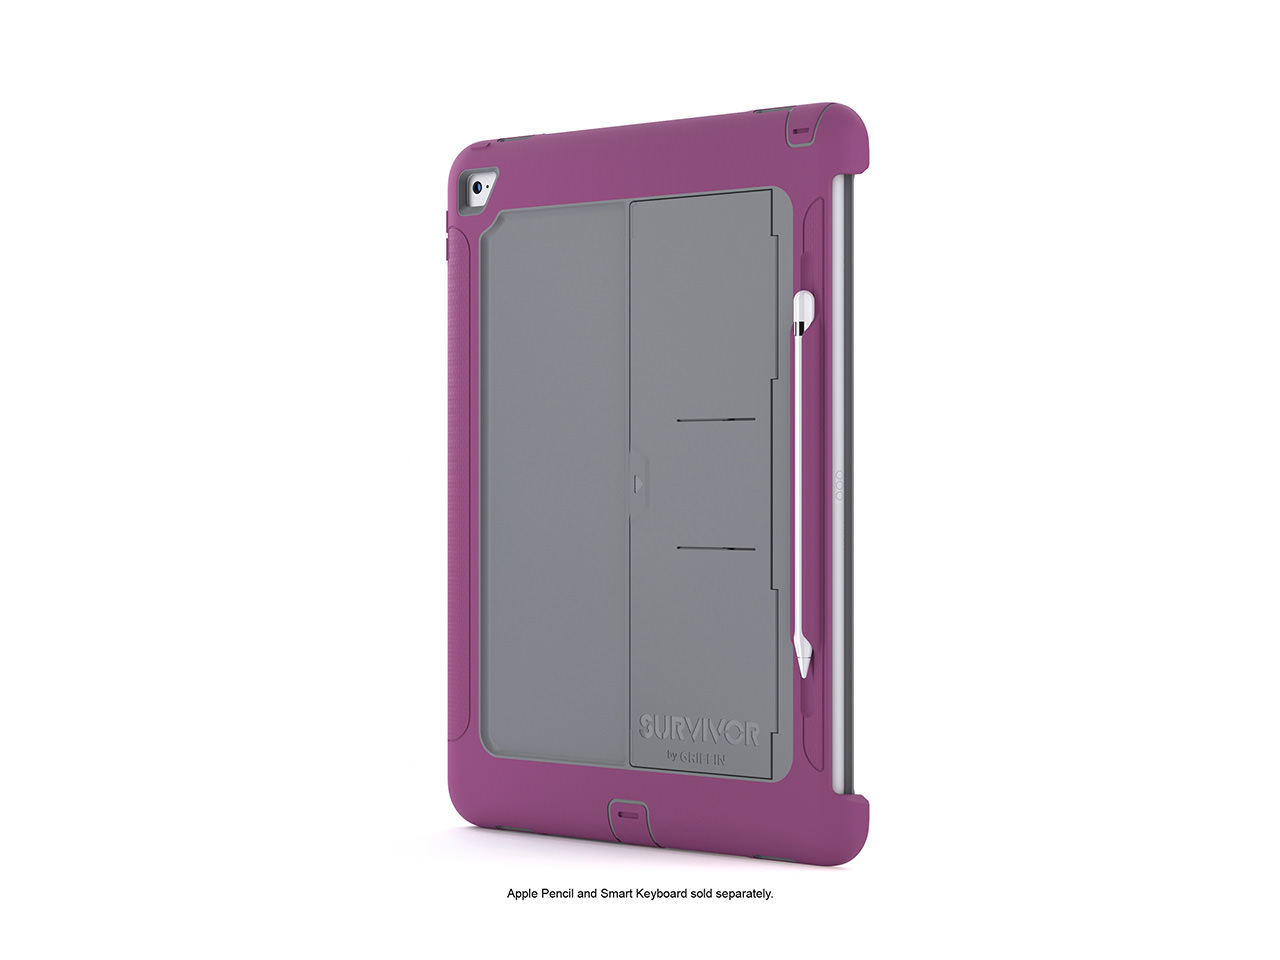 Griffin Griffin iPad Pro 12.9 Rugged Case Survivor Slim, Protective Case + Stand, The drop protection of original... by Griffin Technology